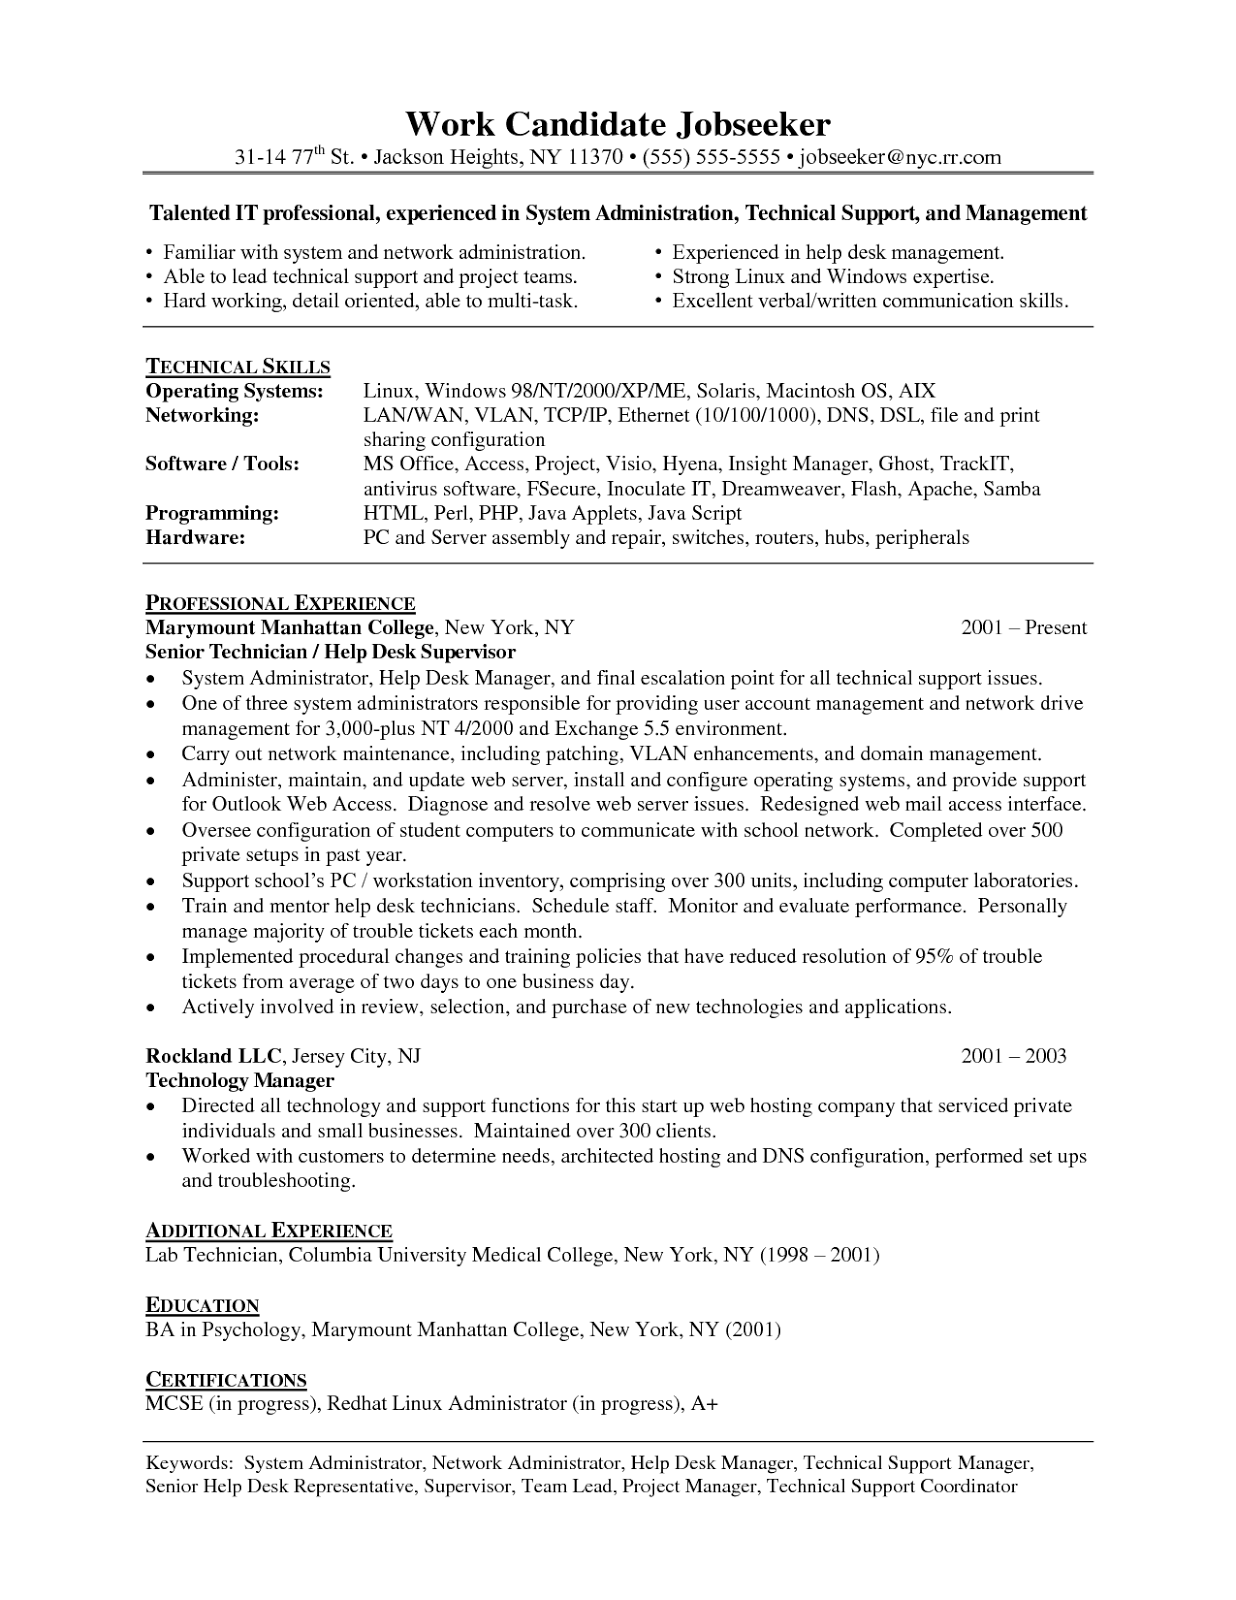 help desk team leader cover letter - Template